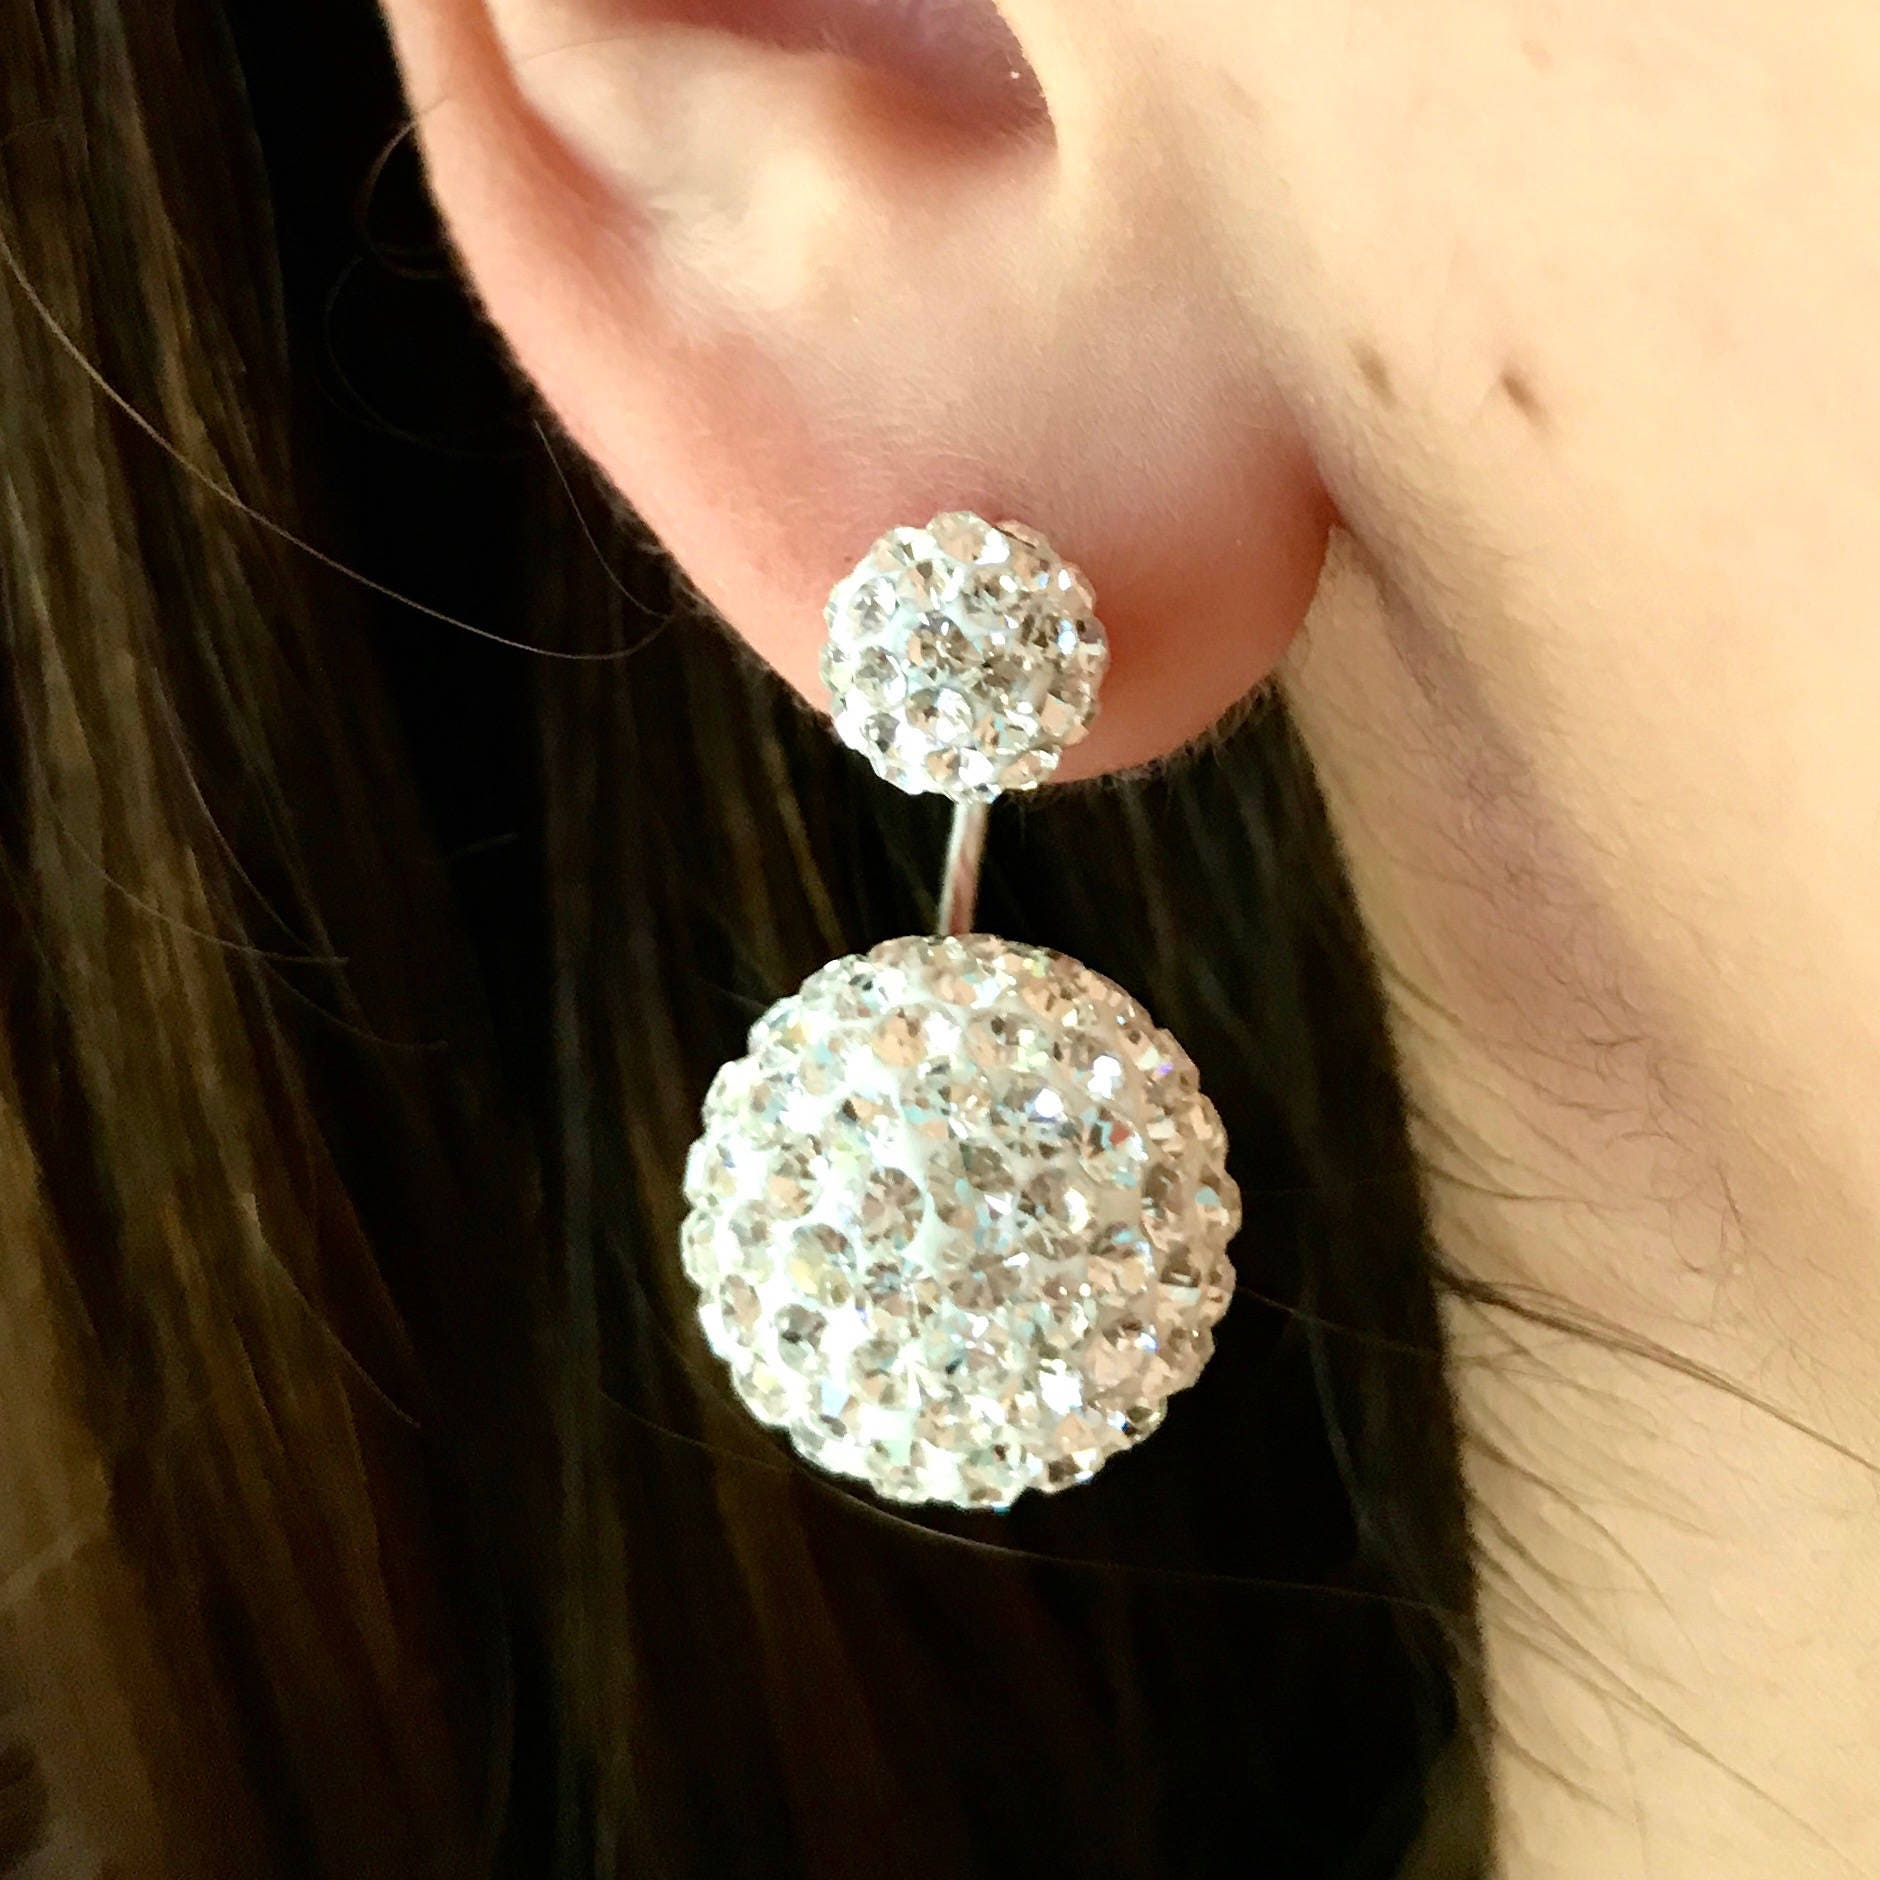 earrings sparkly clothing birthday different handmade solid luxury stud gift day jewellery swarovski to self mothers silver mother esteem elements things round products s pretty improve sterling valentines accessories and